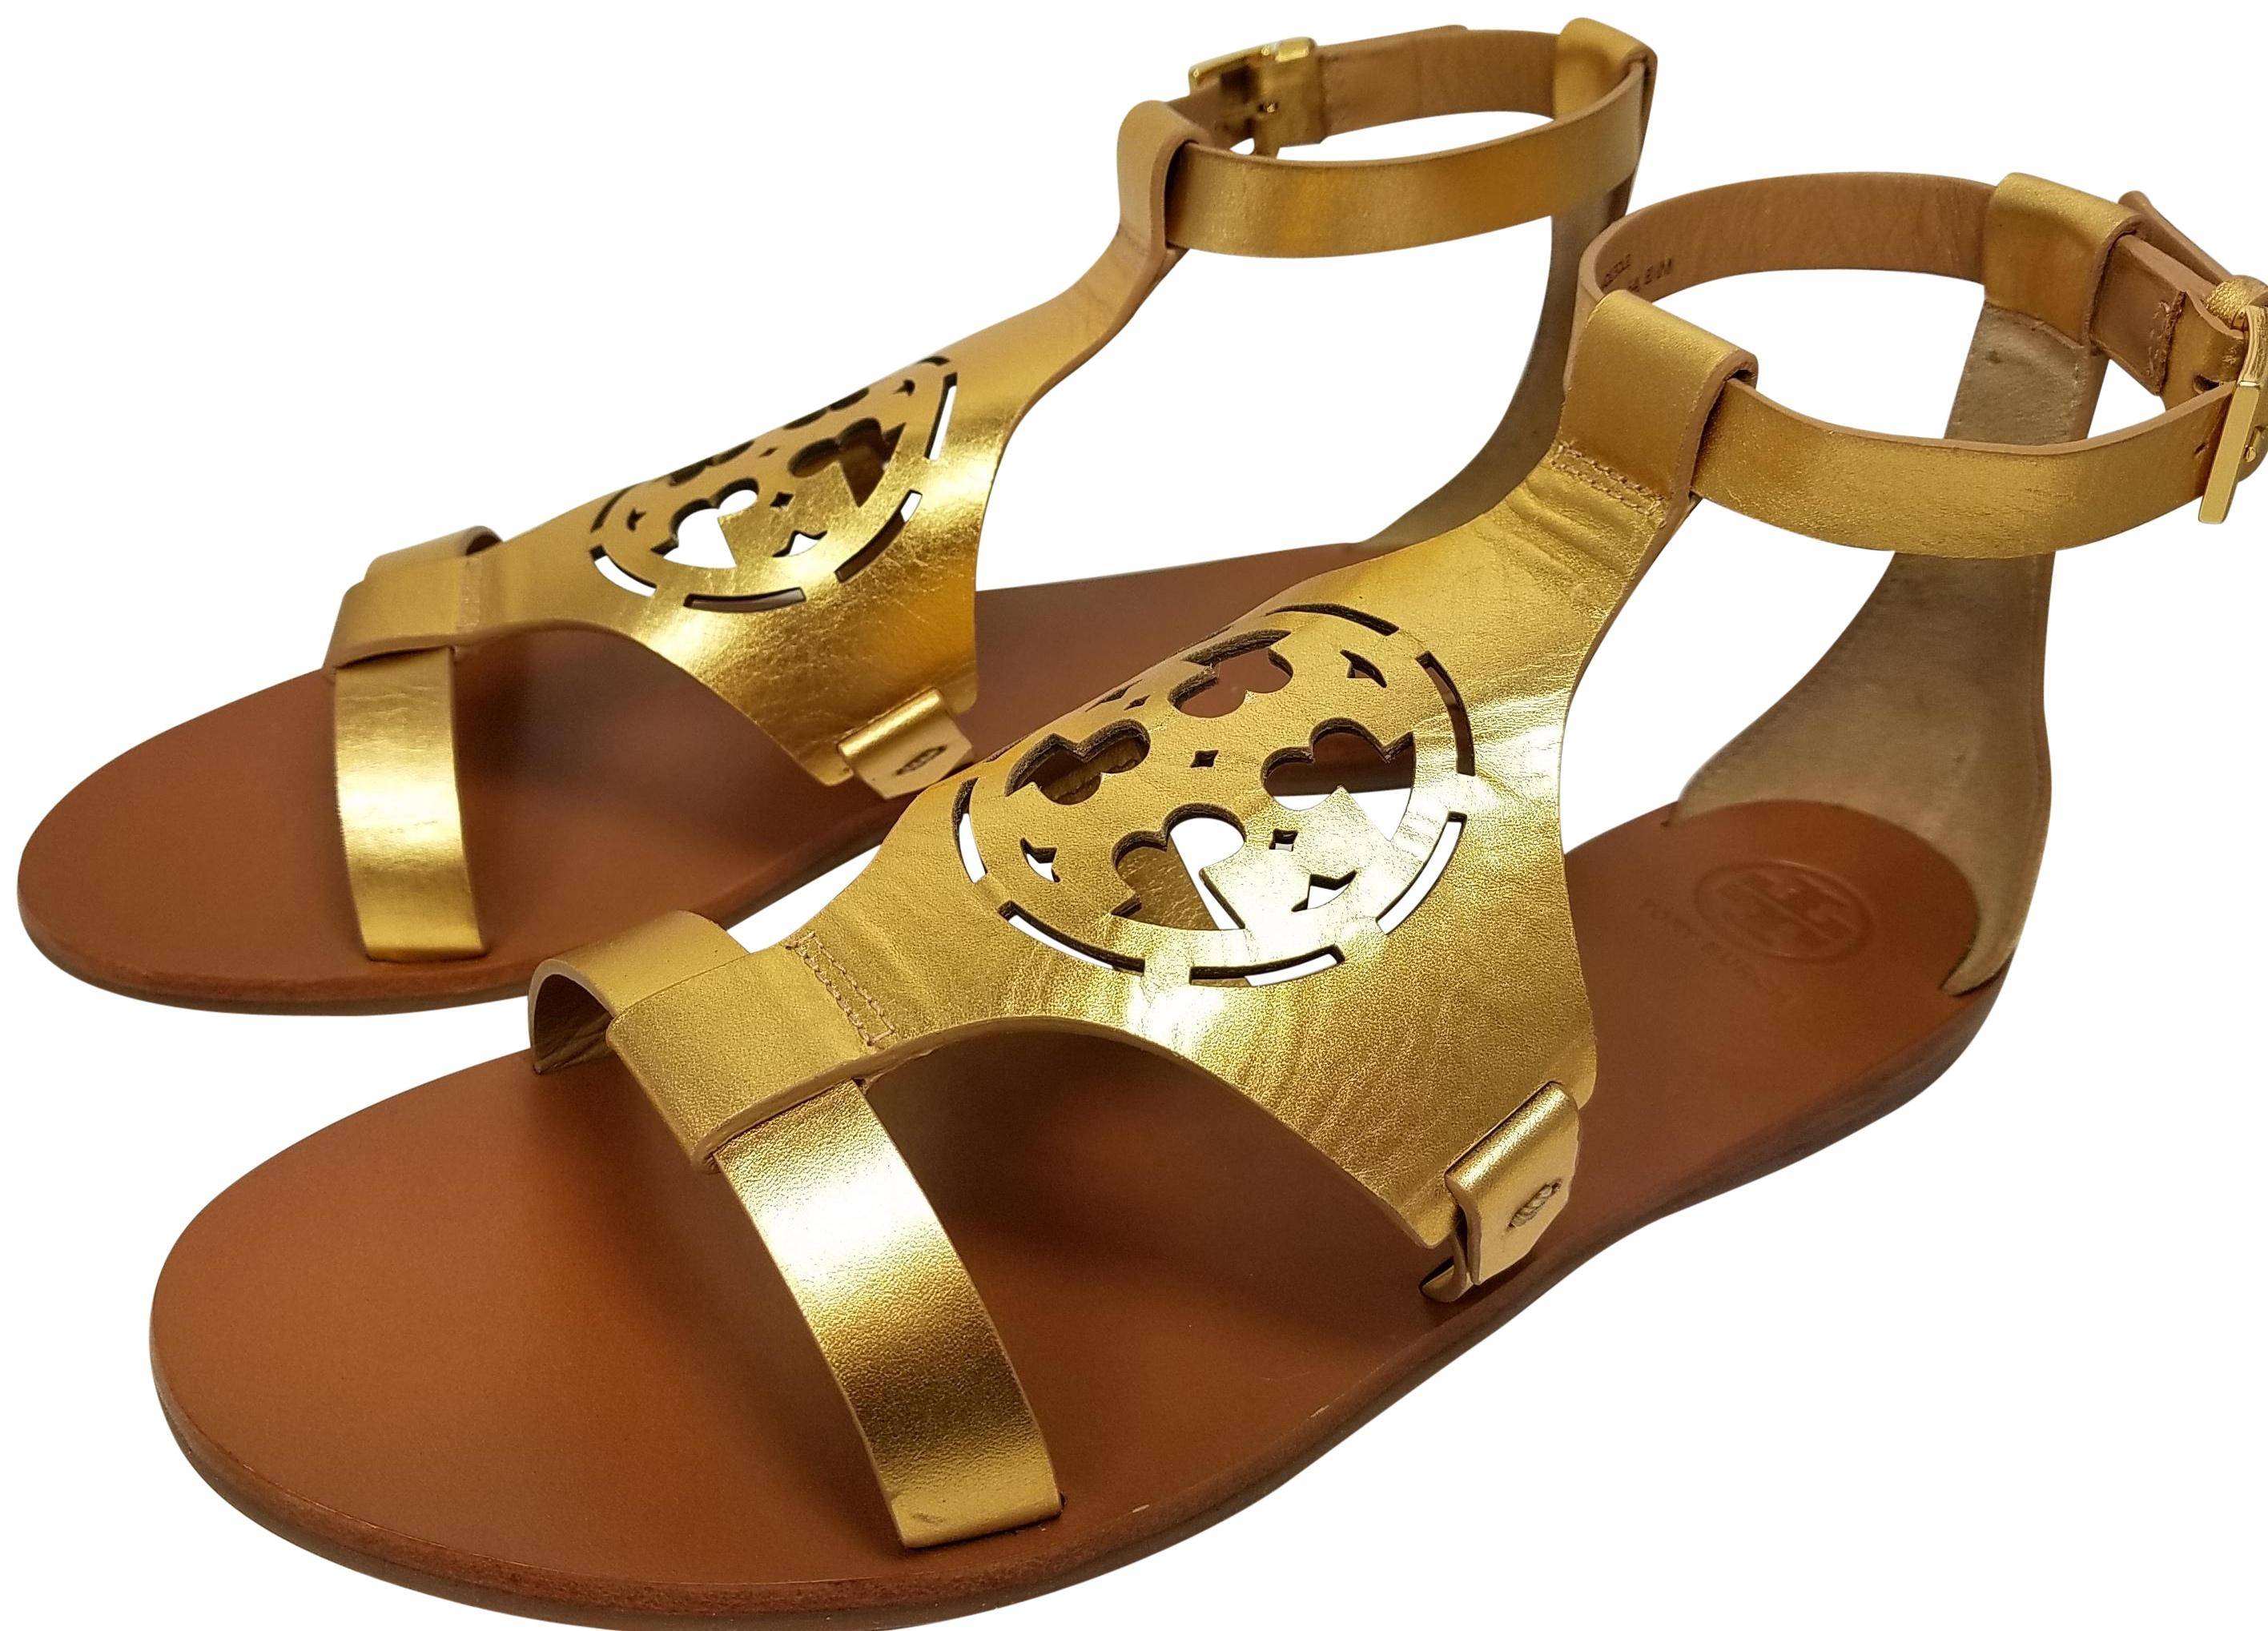 Tory Burch gold Sandals ...